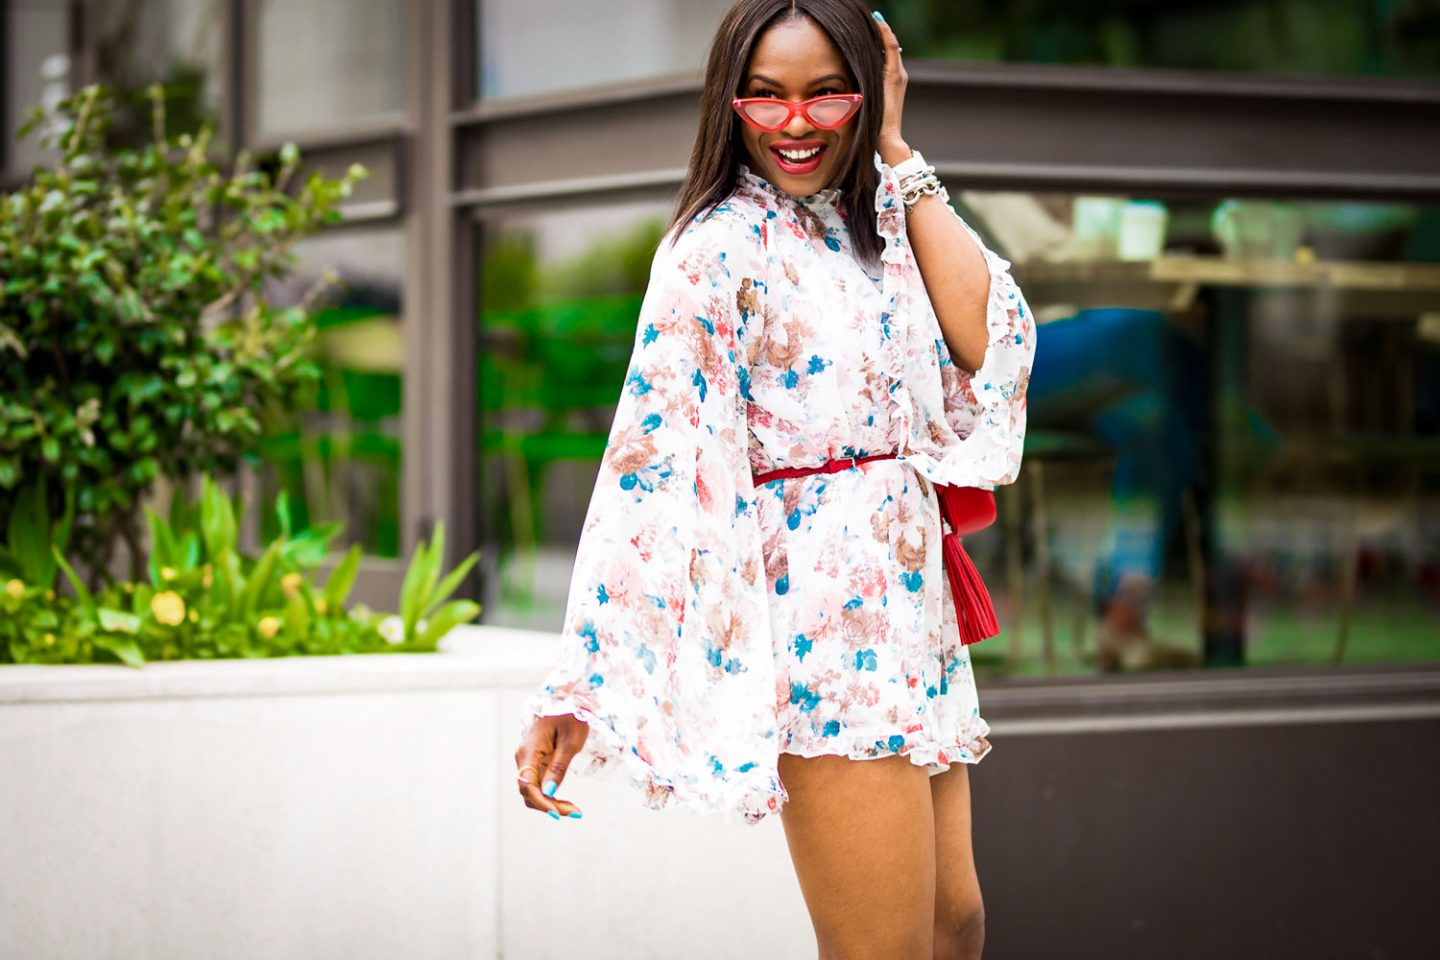 ROCKING ROMPER – HOW TO STYLE A FLORAL ROMPER